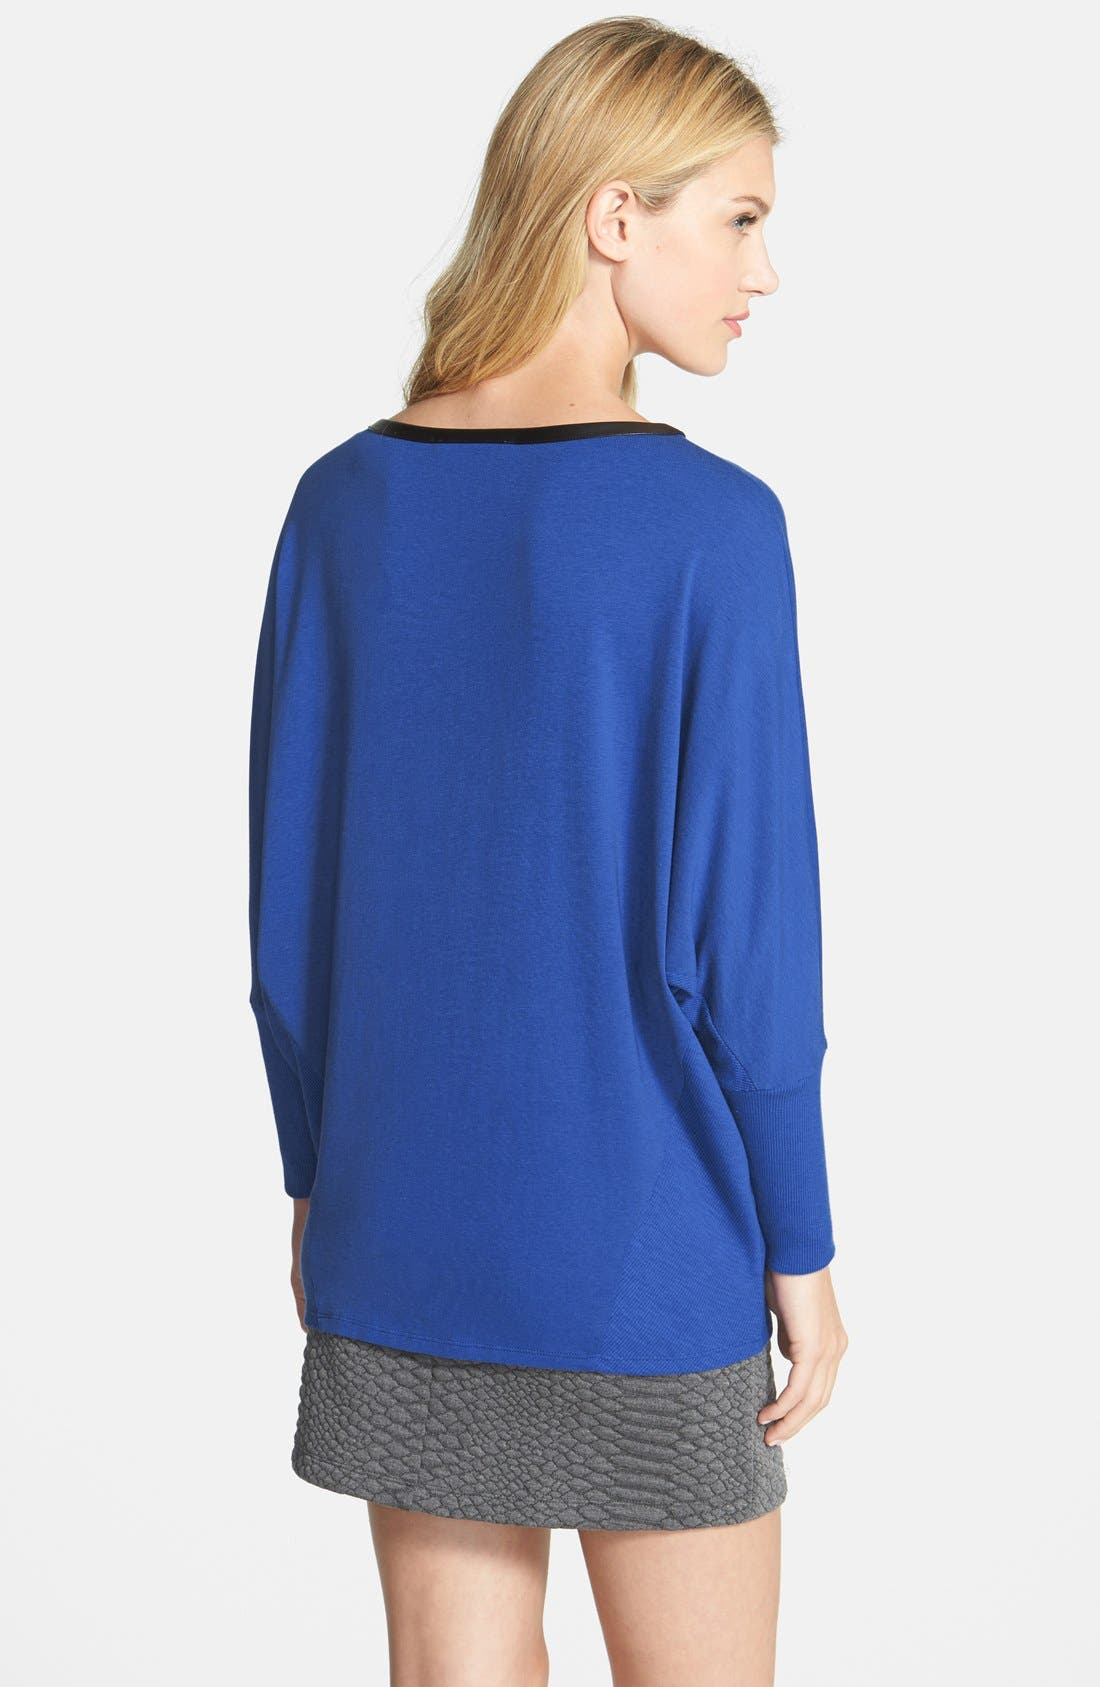 Alternate Image 2  - Two by Vince Camuto 'Saturday' Faux Leather Trim Top